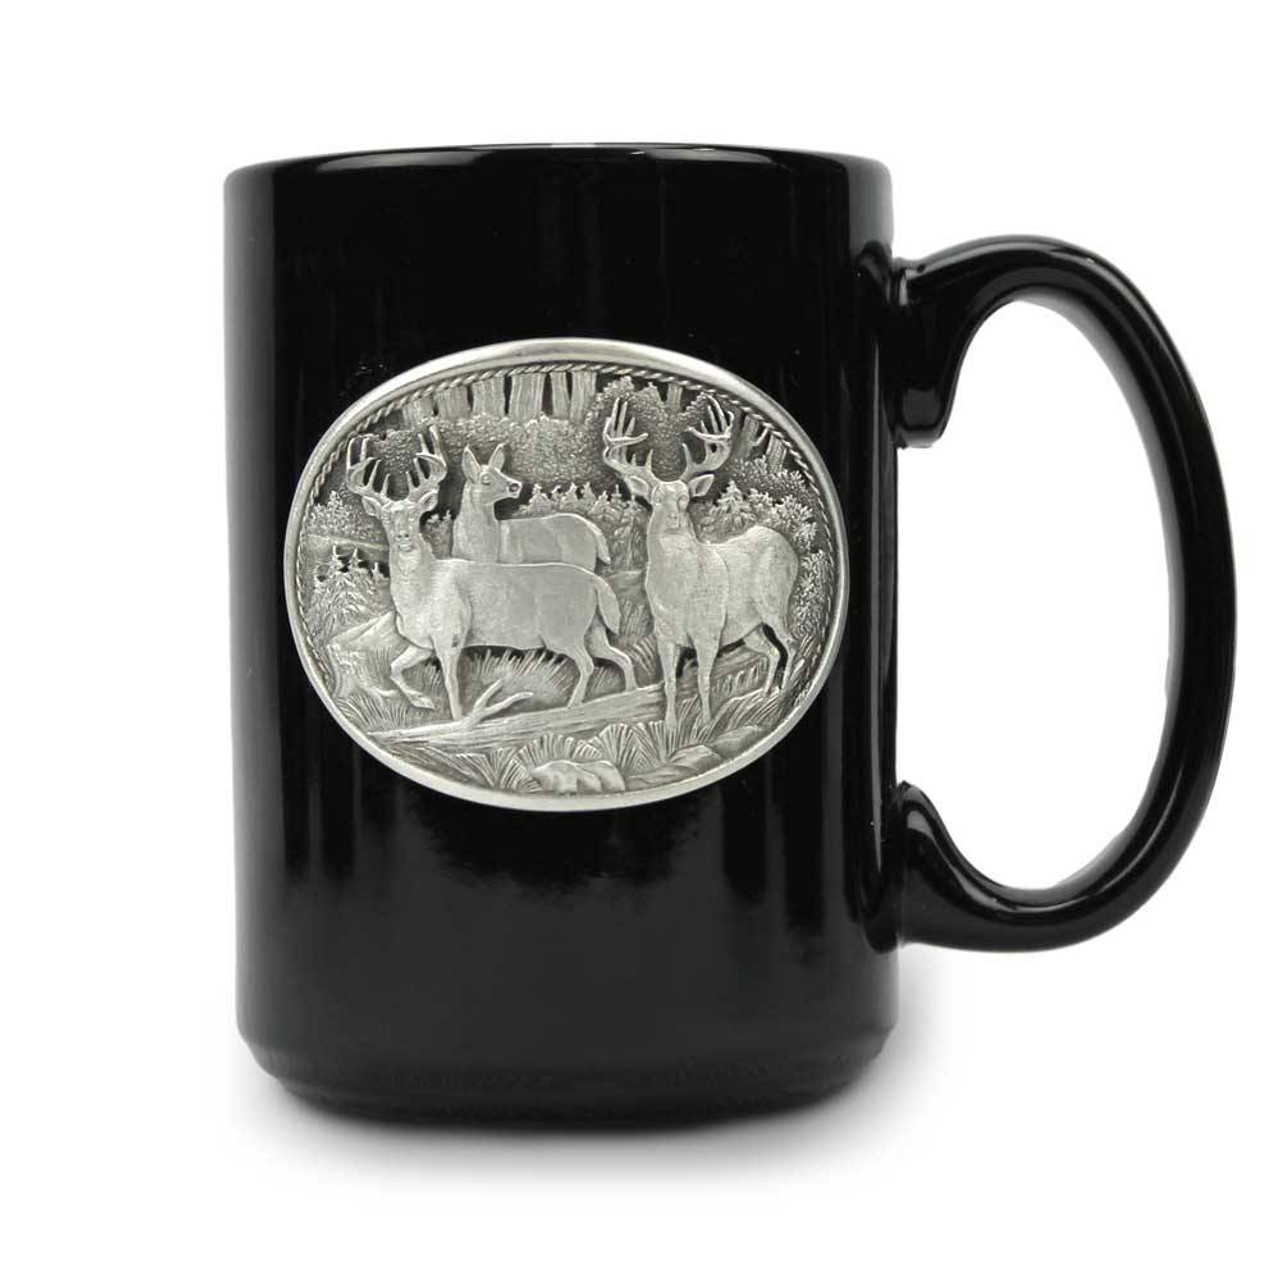 23579d91f09 Whitetail Deer Ceramic Coffee Mug | American Expedition